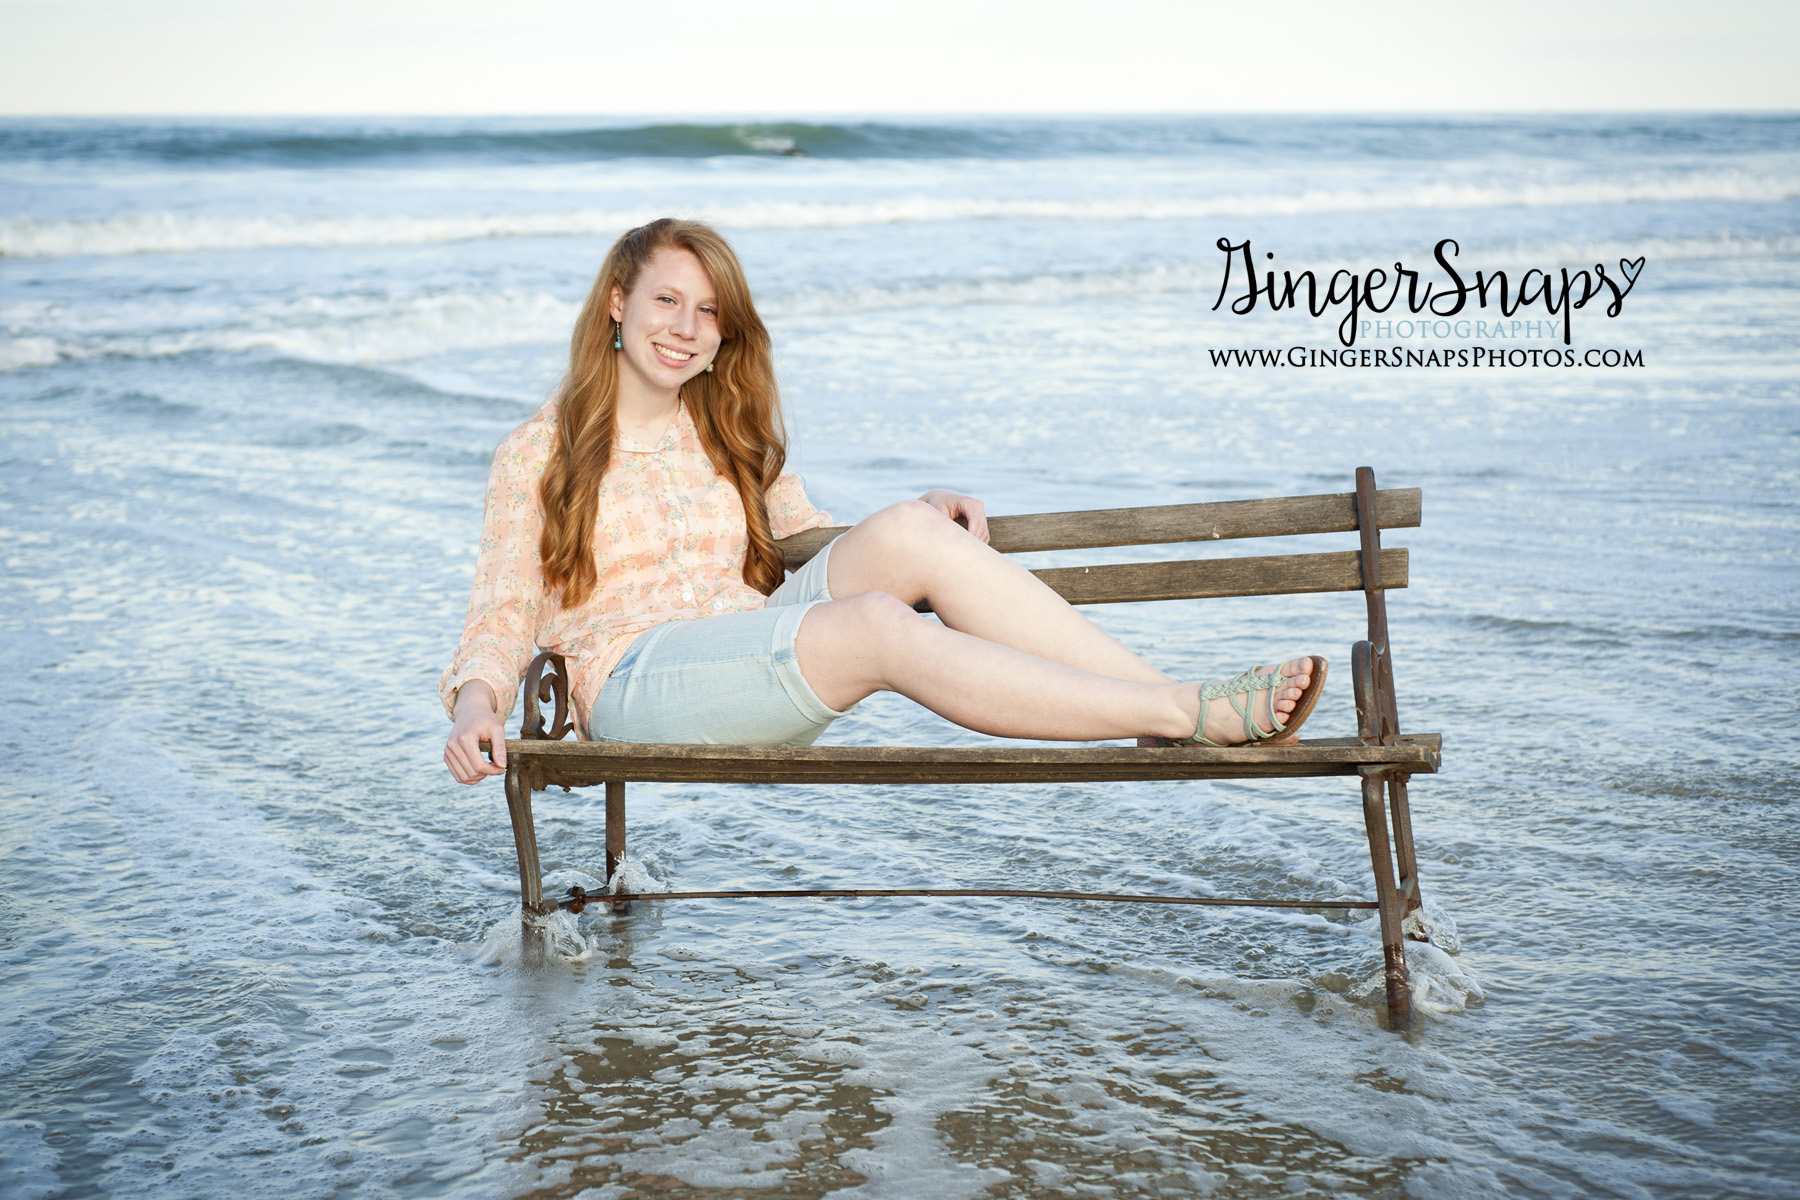 GingerSnaps Photography - 03.jpg